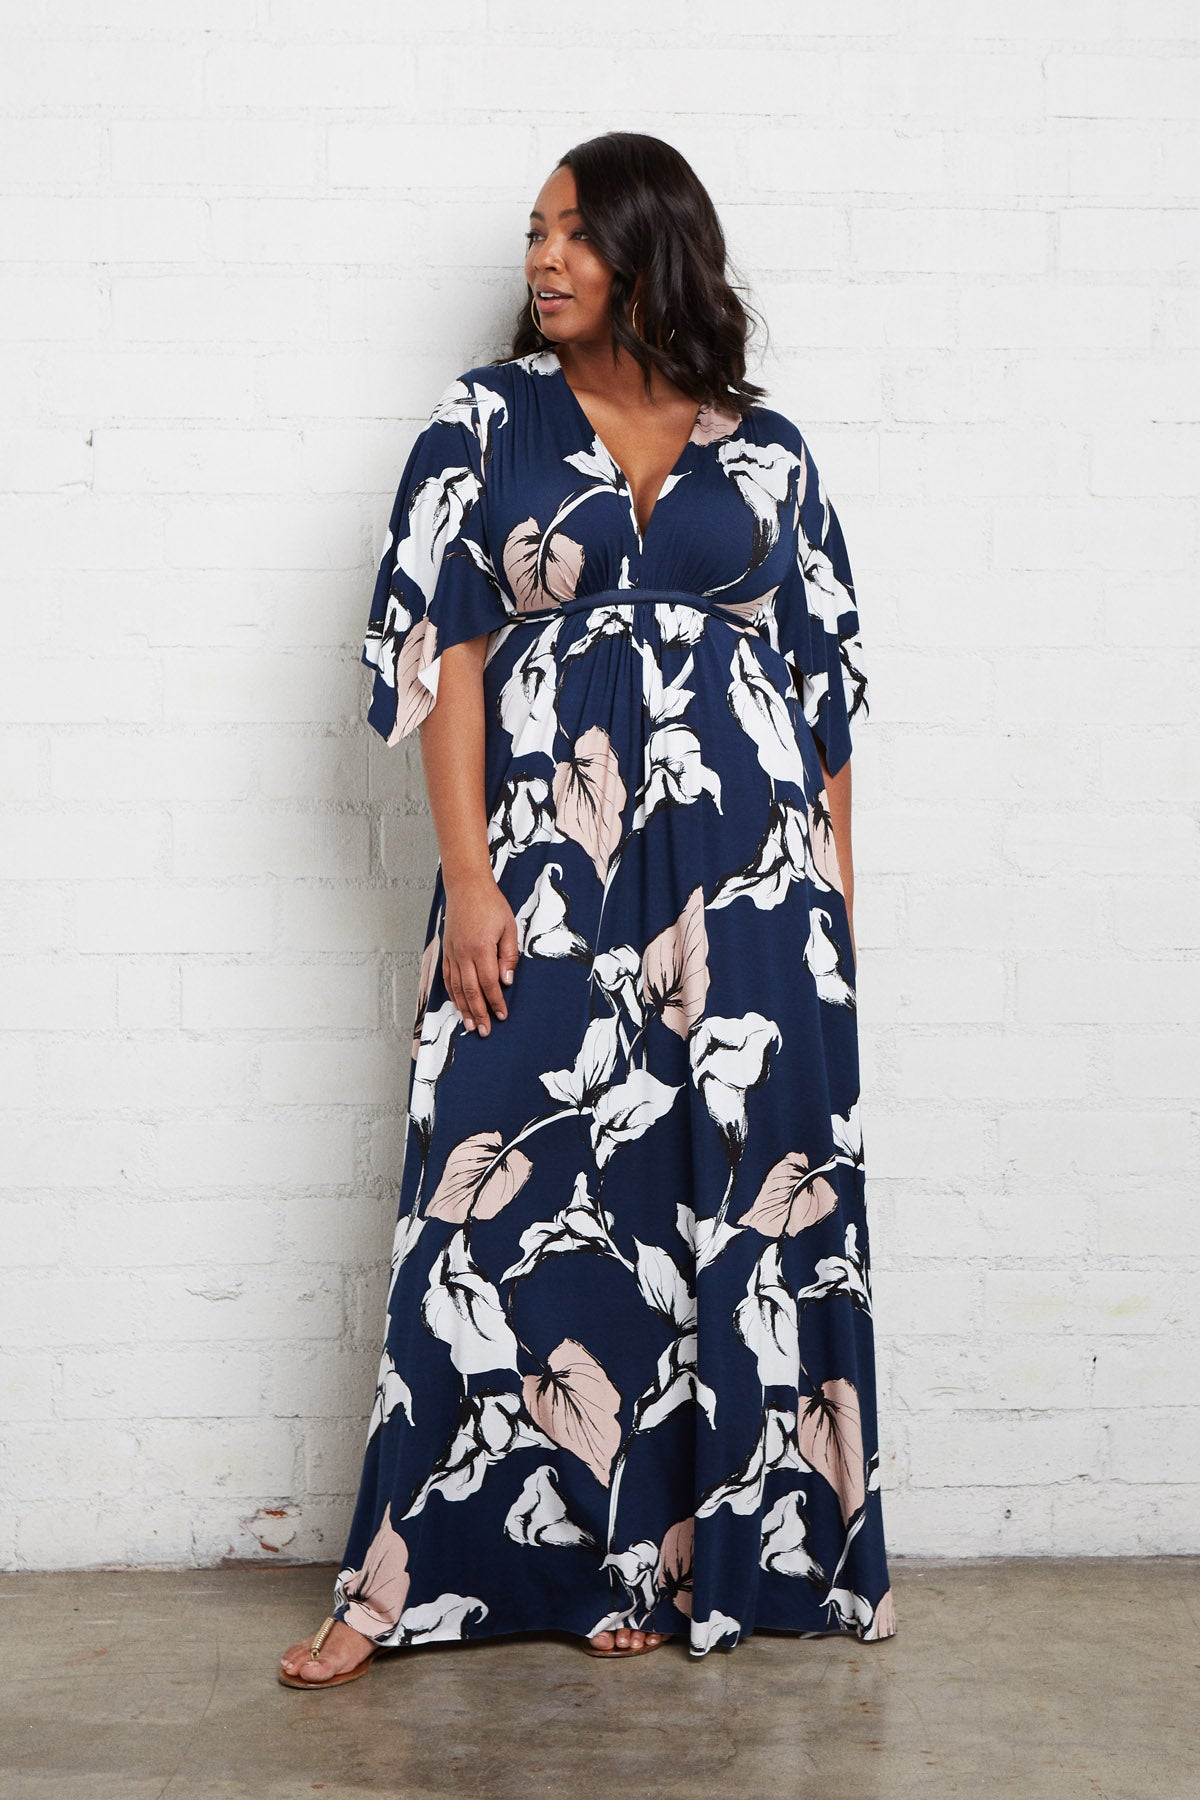 Long Caftan Dress - Navy Calla Print, Plus Size